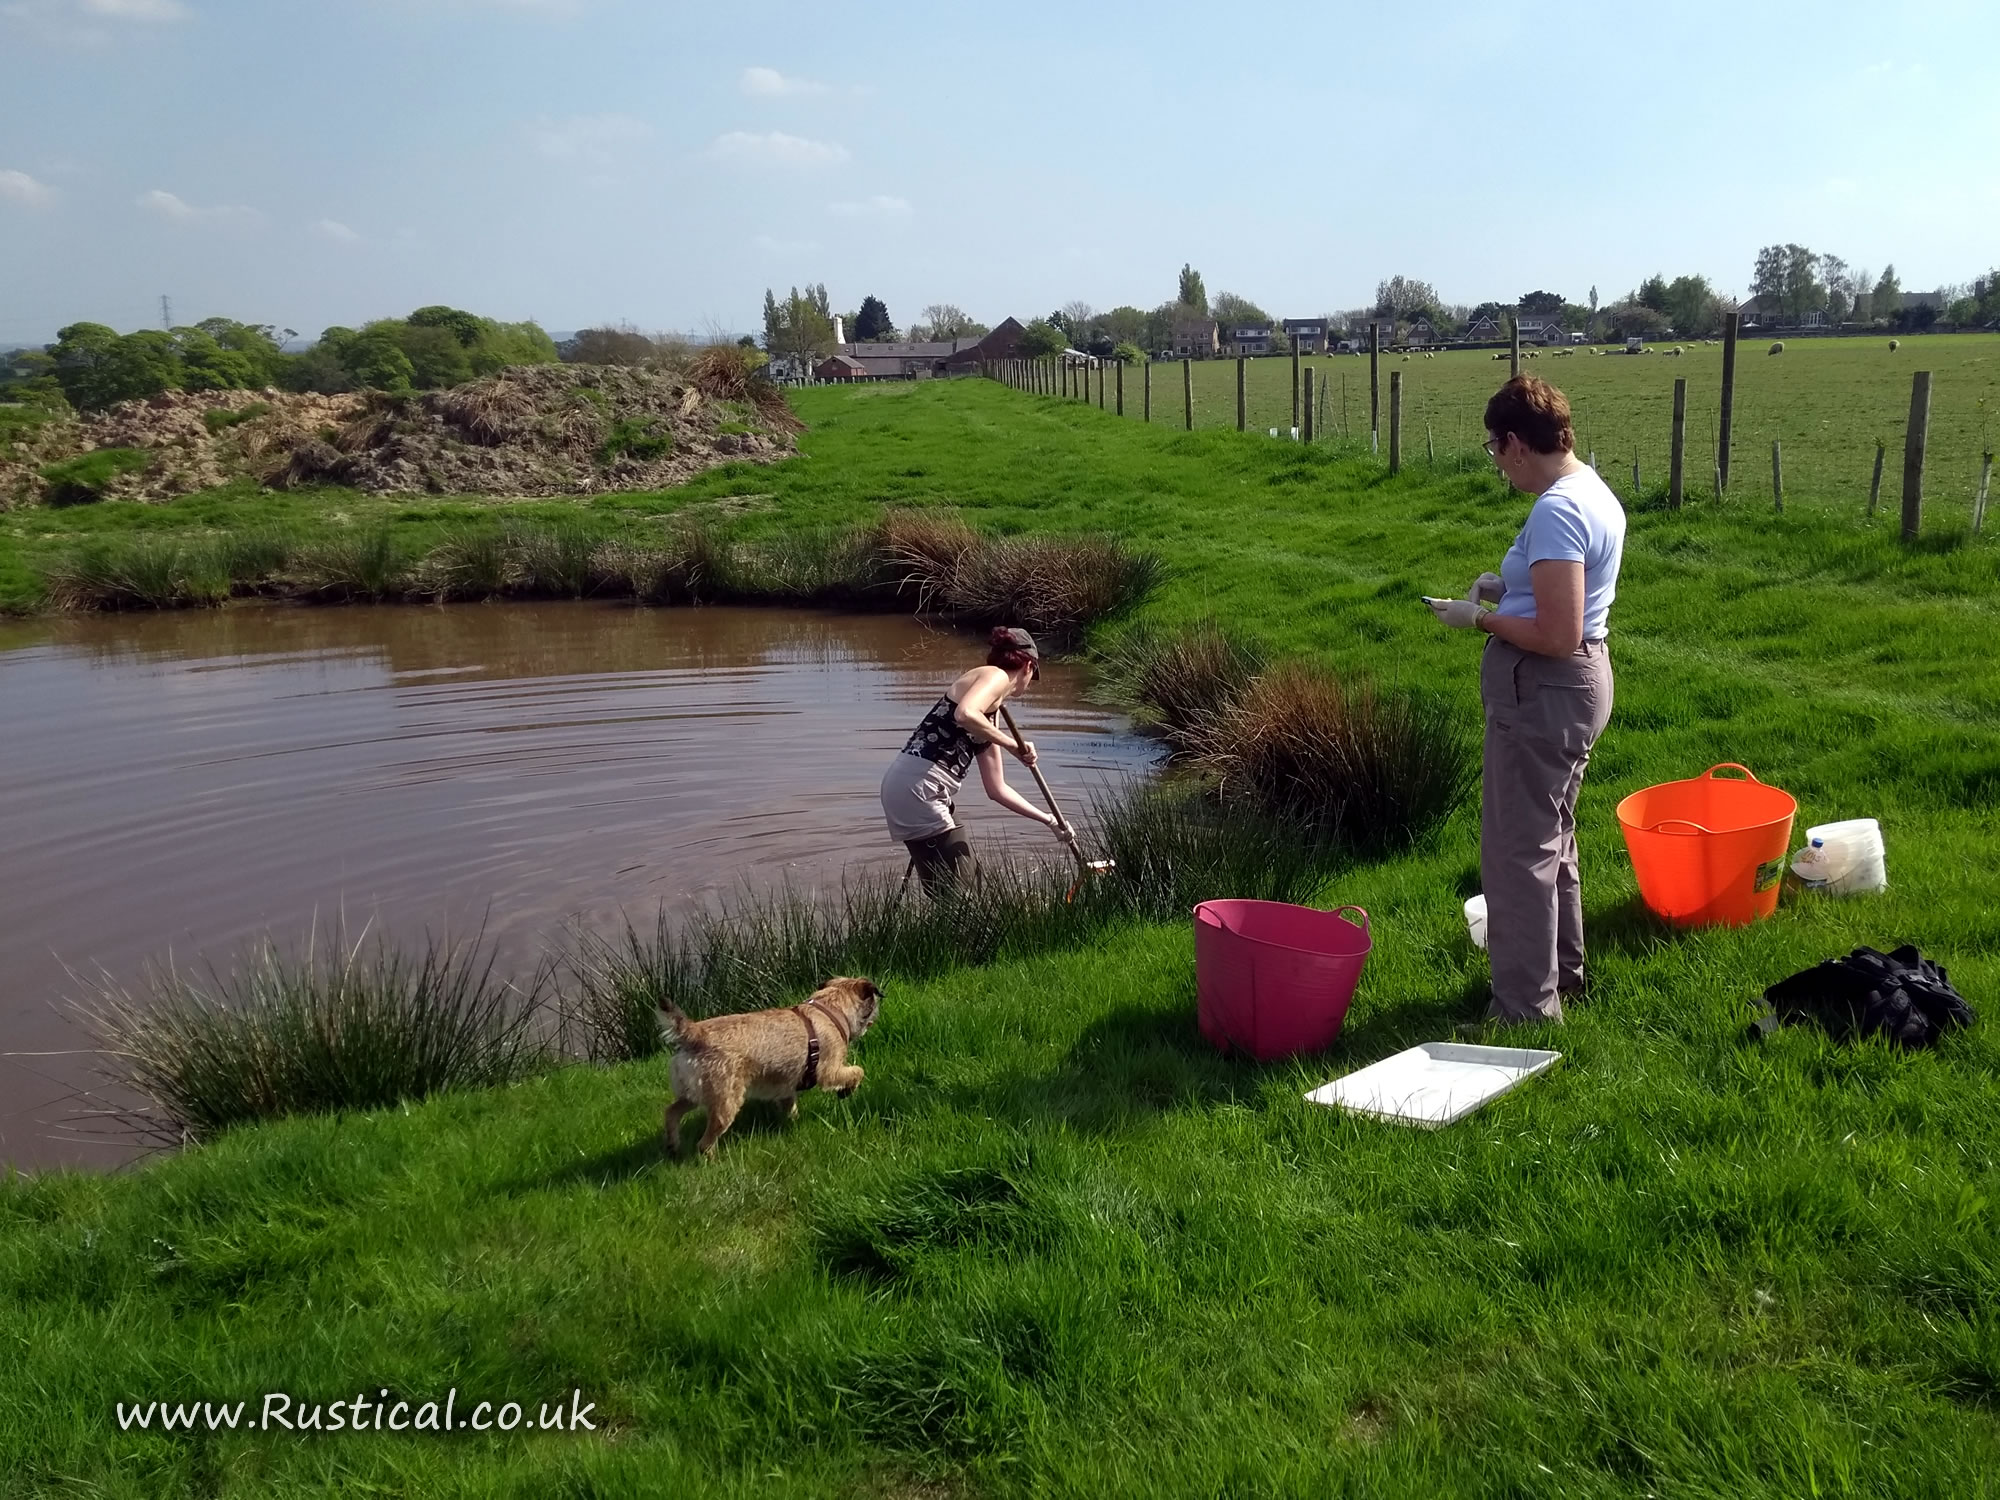 Counting freshwater invertebrates in a a freshly restored farm pond